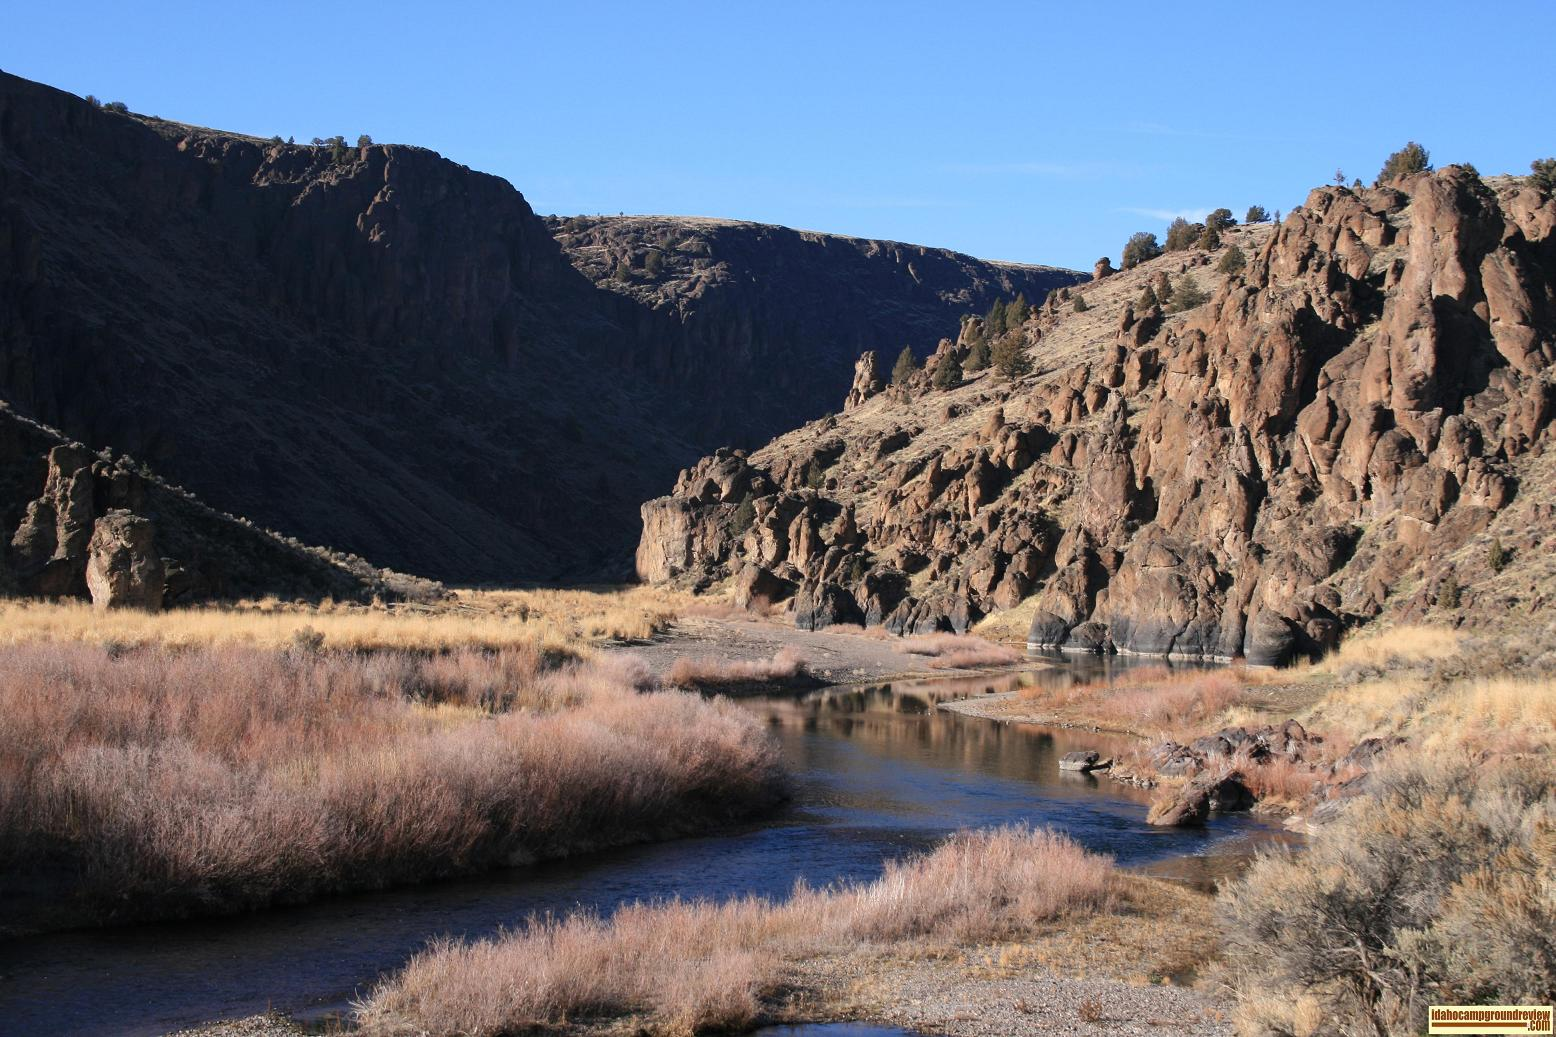 Owyhee River in South East Oregon